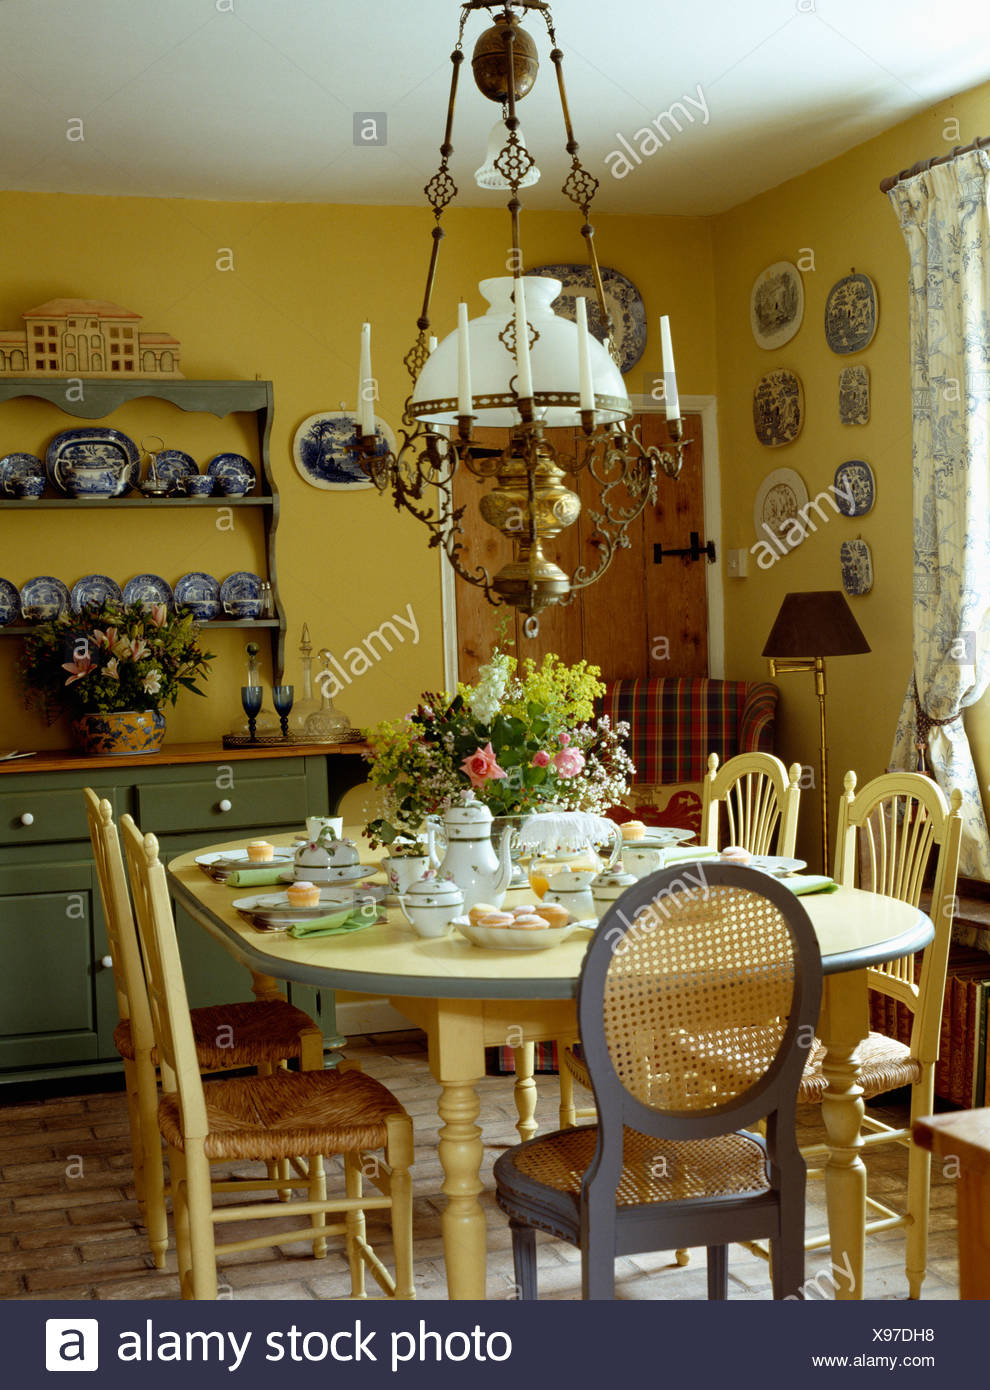 Glass Brass Victorian Lamp Above Cream Chairs And Table Set For Lunch In Pale Yellow